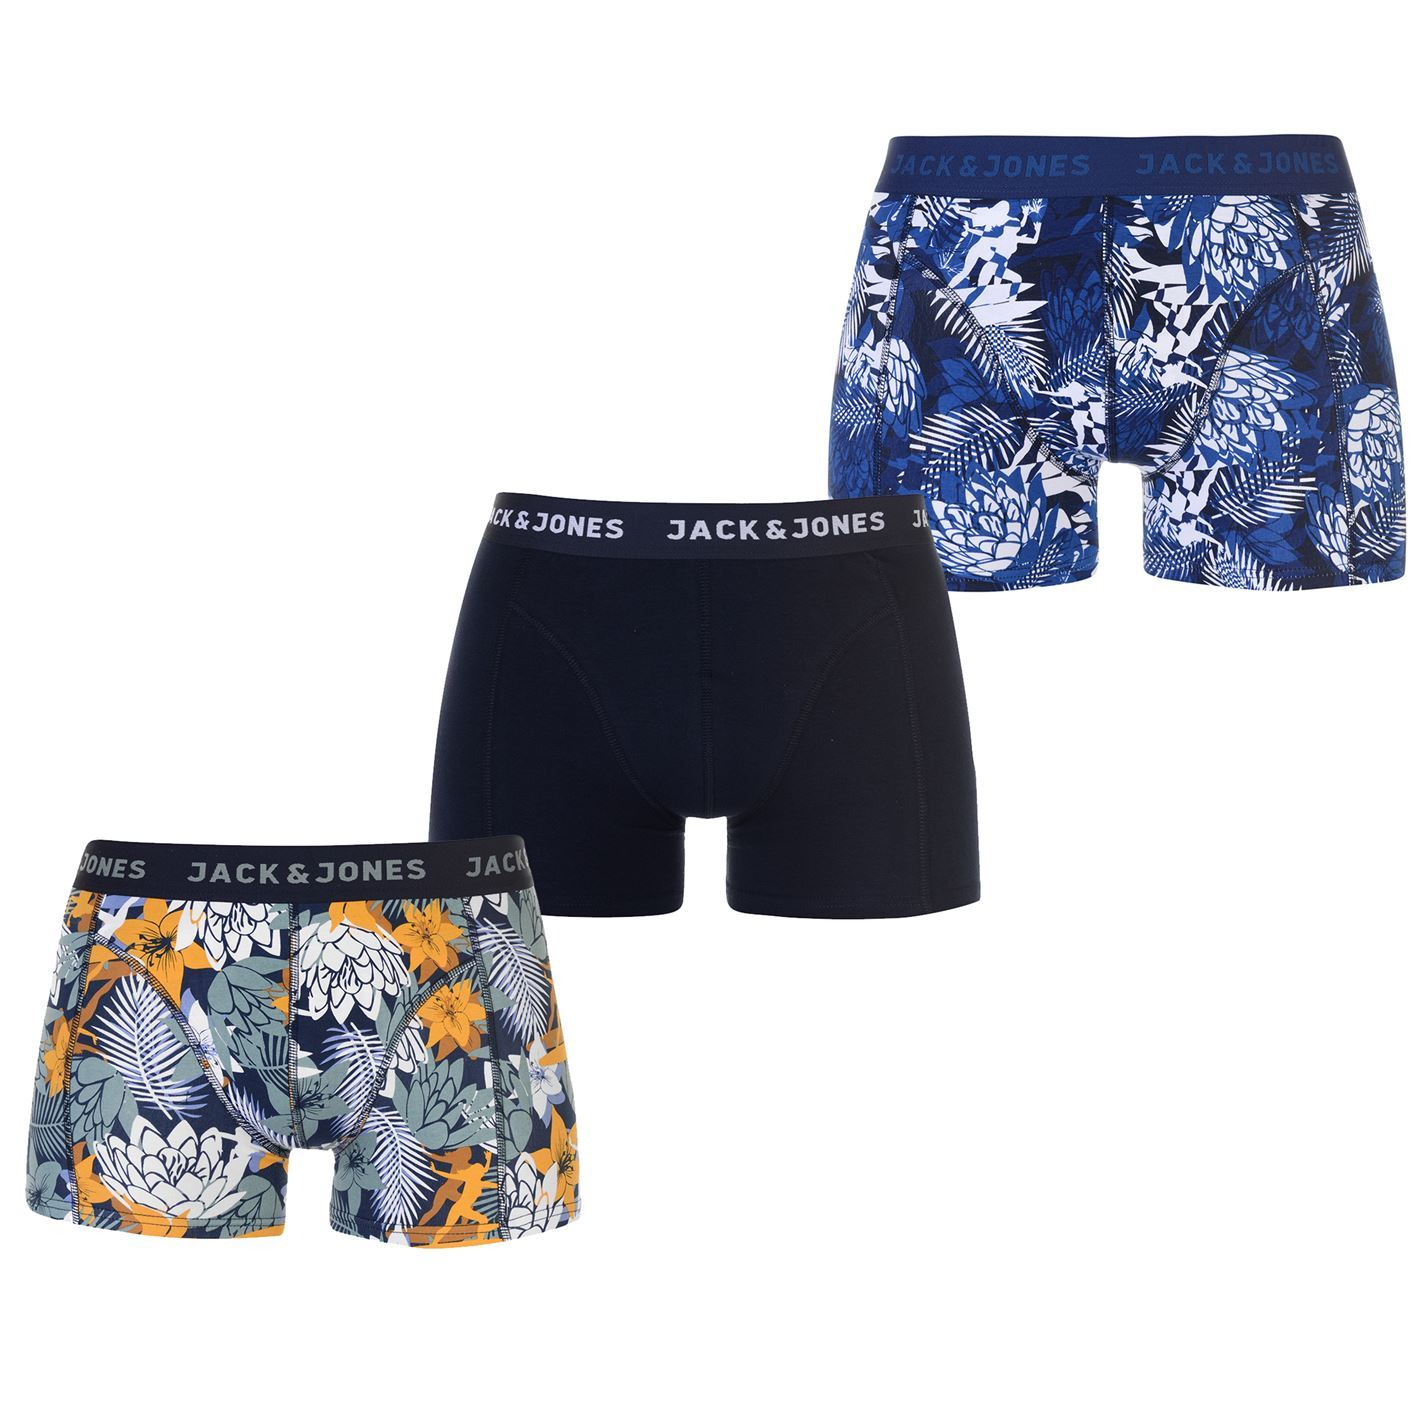 Jack-and-Jones-Mens-Flowers-Pack-of-3-Trunks-Boxers-Underwear-Stretch-Stretchy